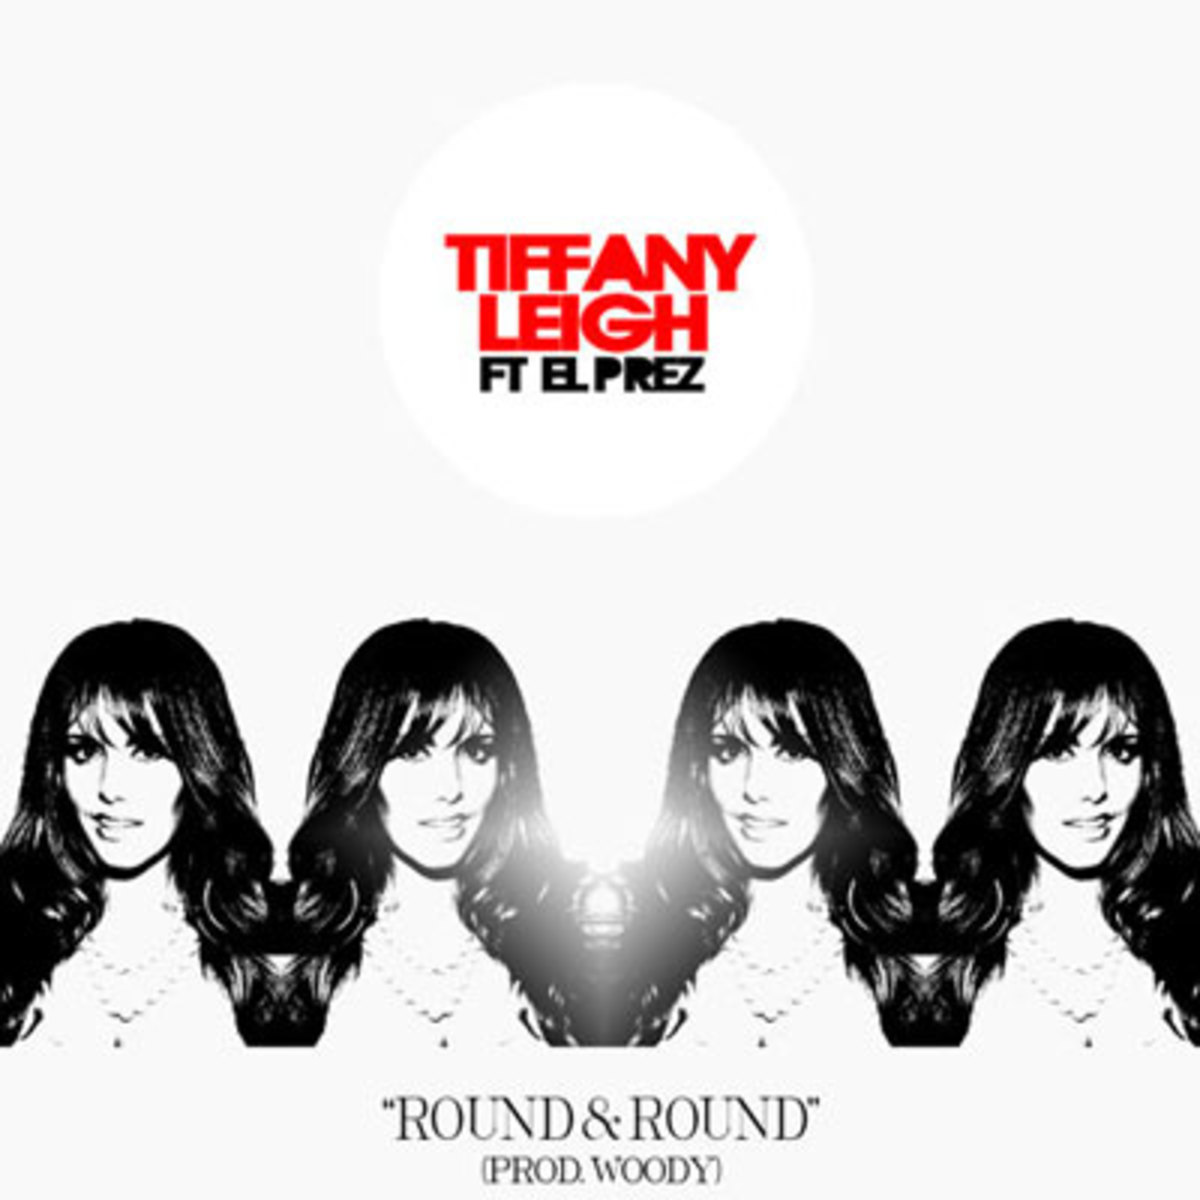 tiffanyleigh-roundround.jpg